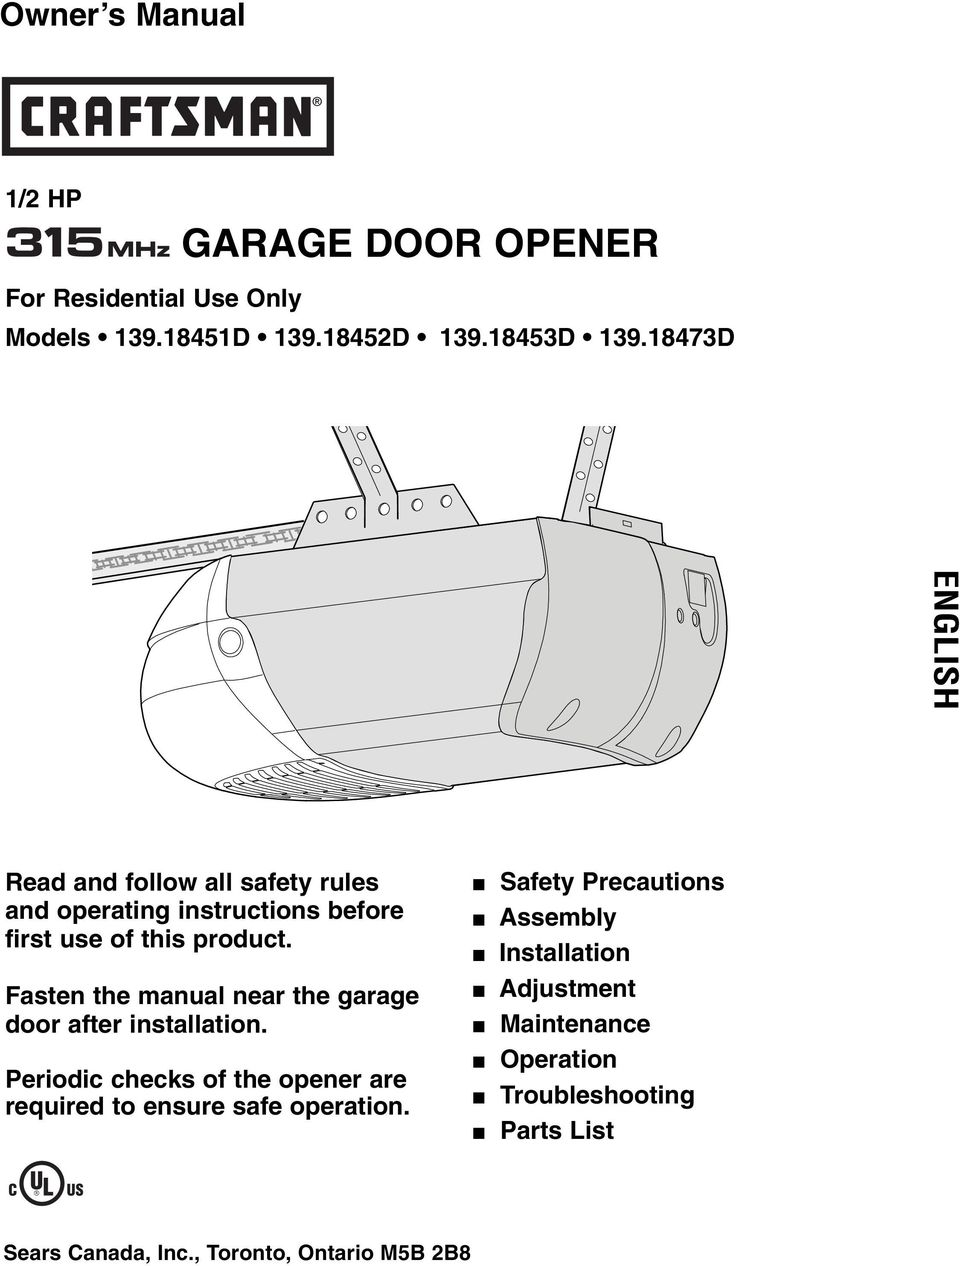 Garage Door Opener Owner S Manual English 1 2 Hp For Residential Fisher Connector Fuse Box Fasten The Near After Installation